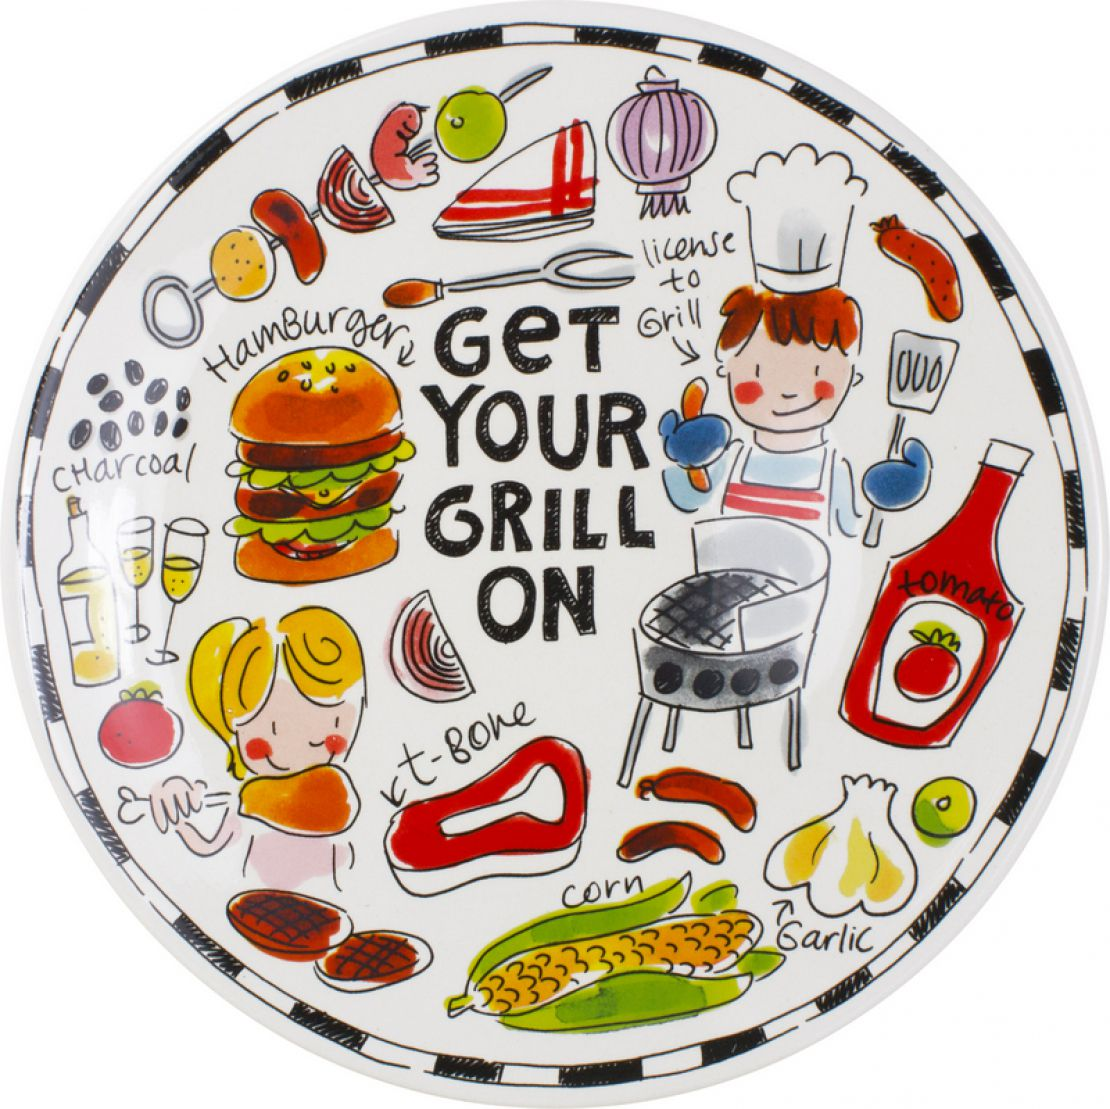 Get Your Grill On ~ Kerstpakket get your grill on